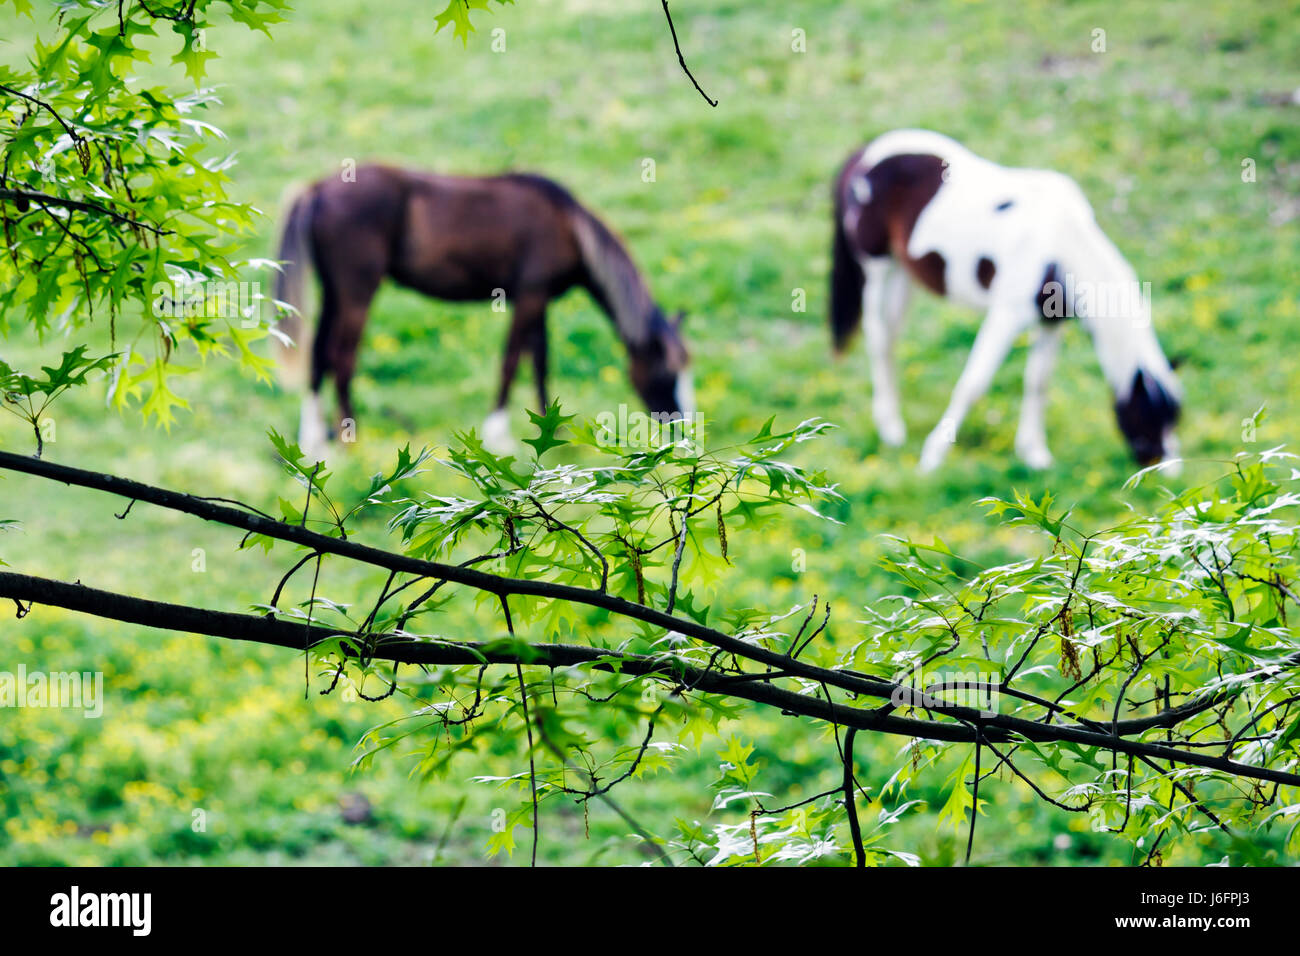 Tennessee Sevierville Five Oaks Riding Stables horses pasture grazing bucolic pastoral branches oak leaves green - Stock Image